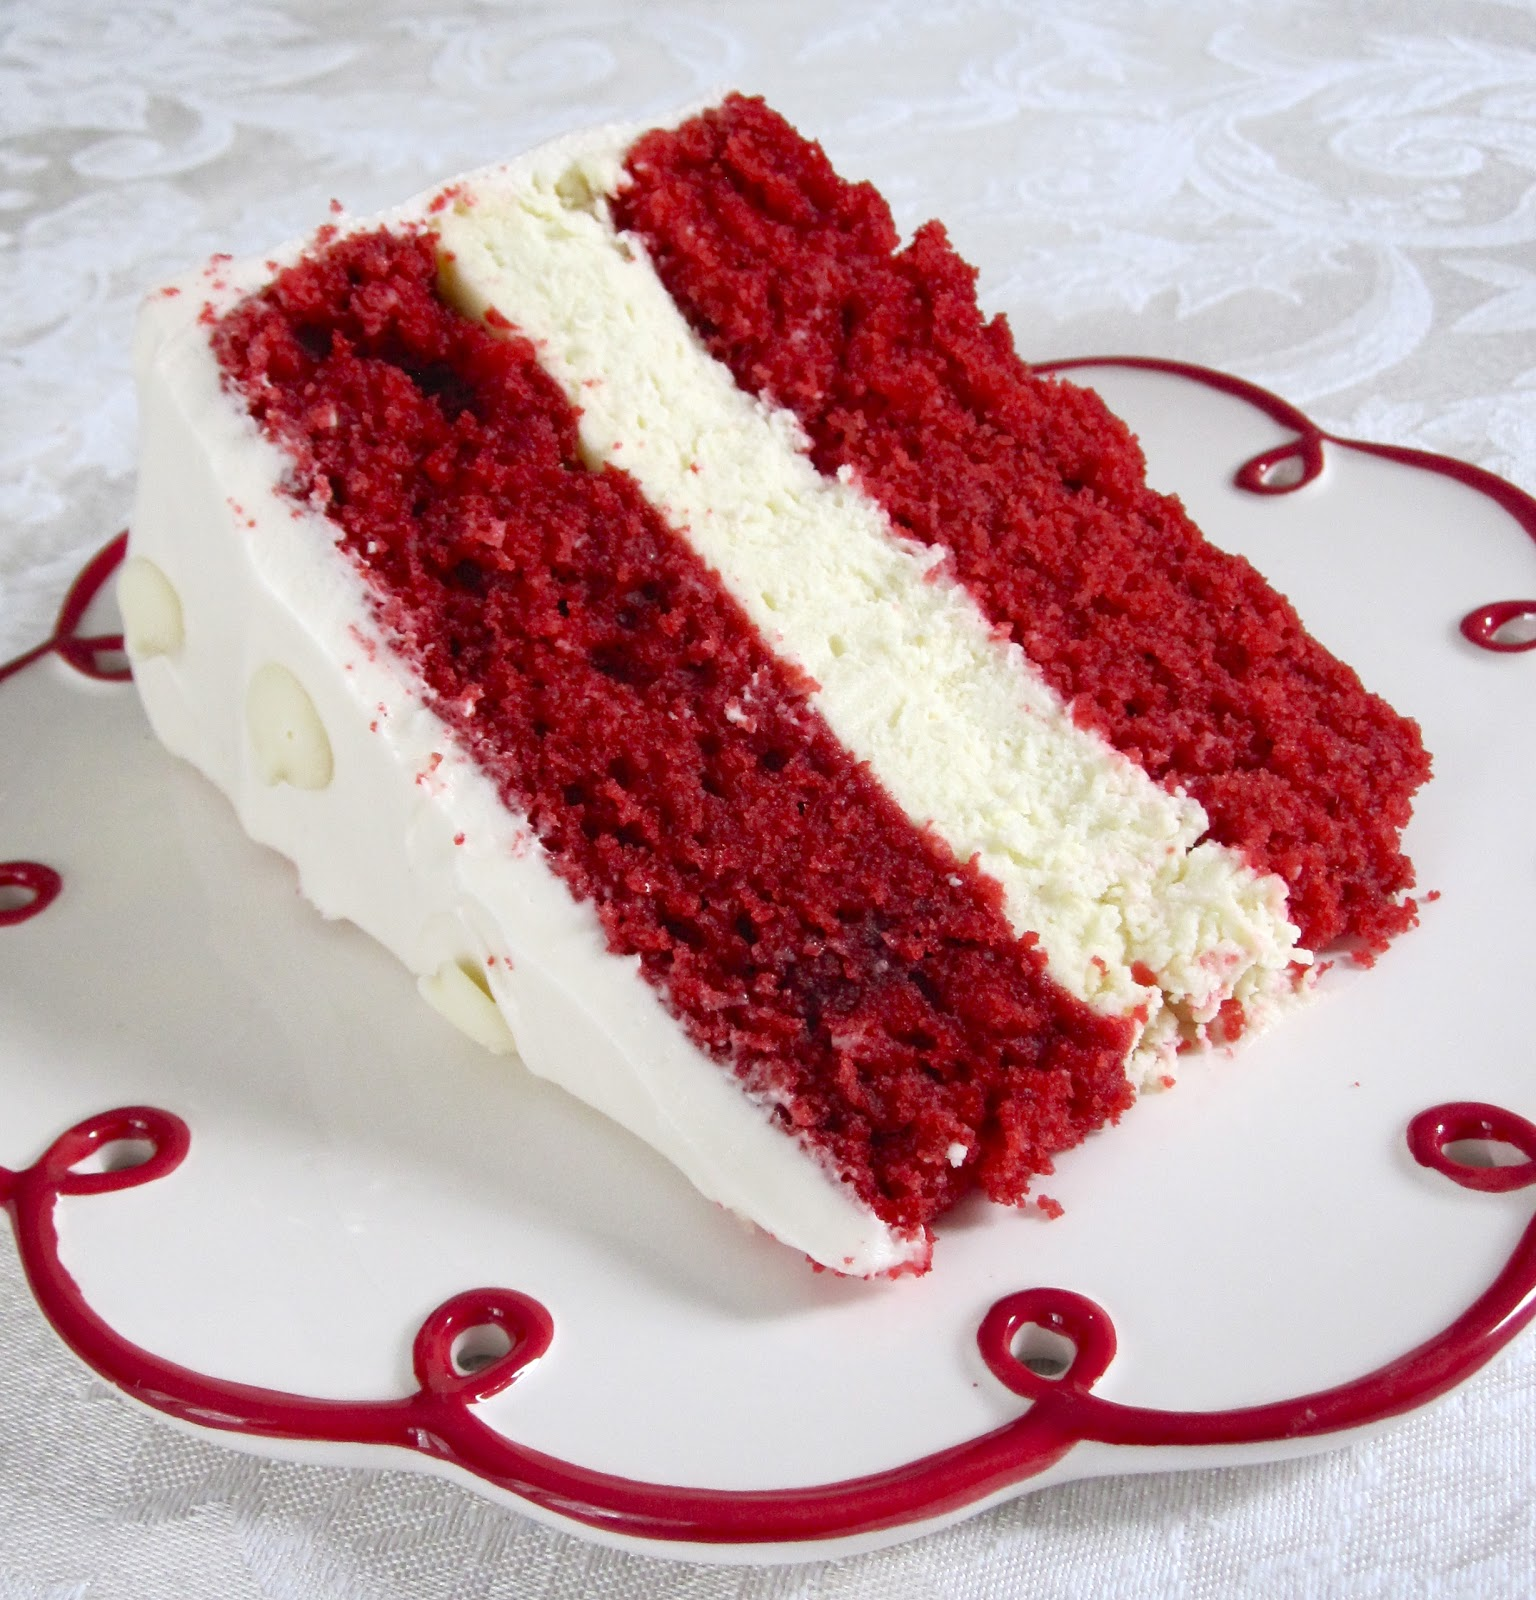 Chocolate Therapy: Red Velvet Cheesecake Cake